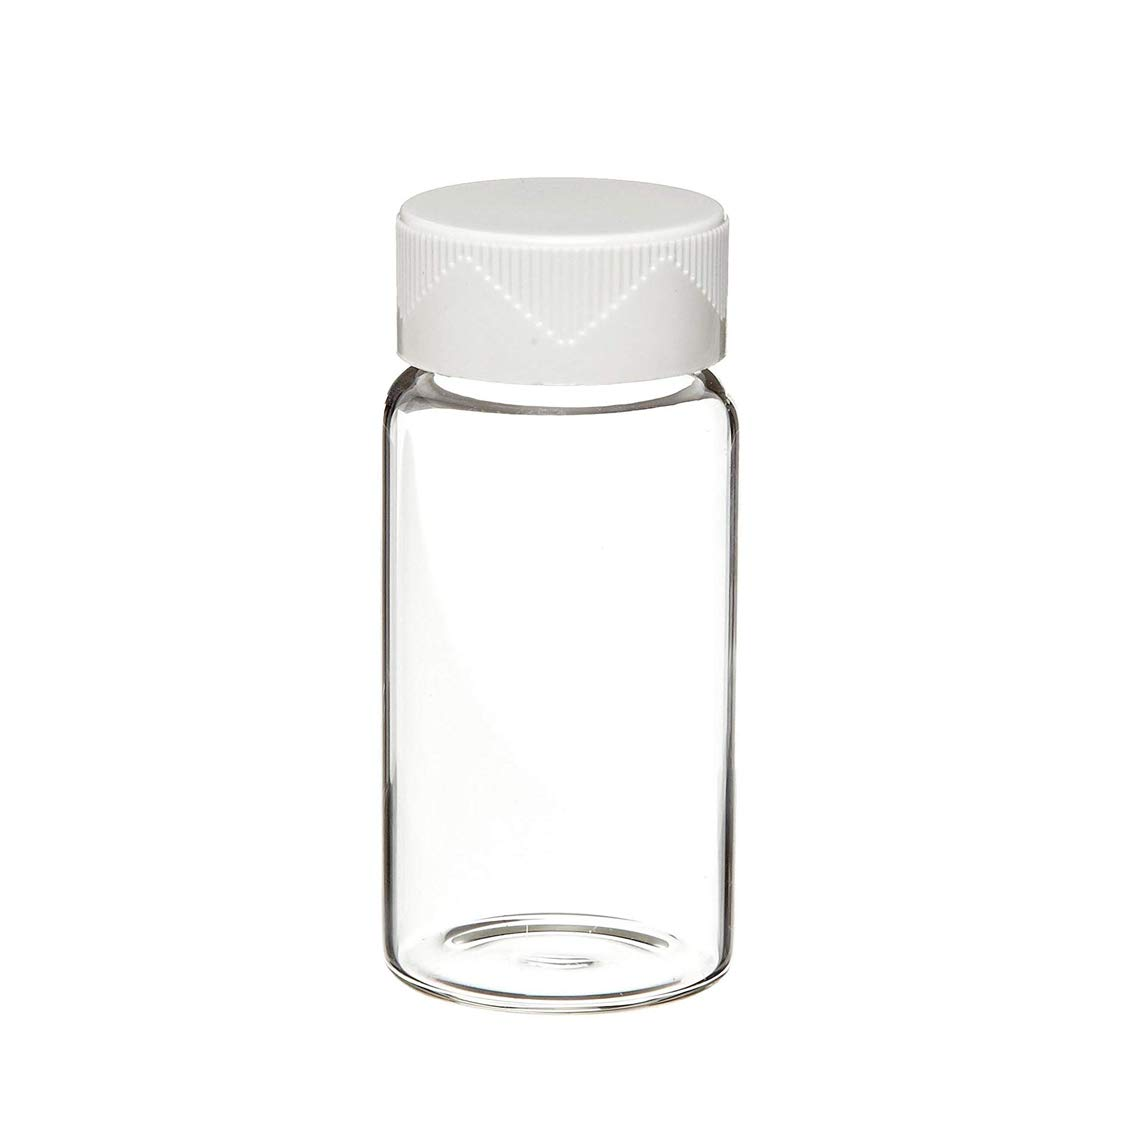 Clear Borosilicate Glass Scintillation Vial with White Urea Screw Cap and Cork-Backed Foil Lined, 24-400mm GPI Thread Finish, 7mL Capacity (Case of 500)